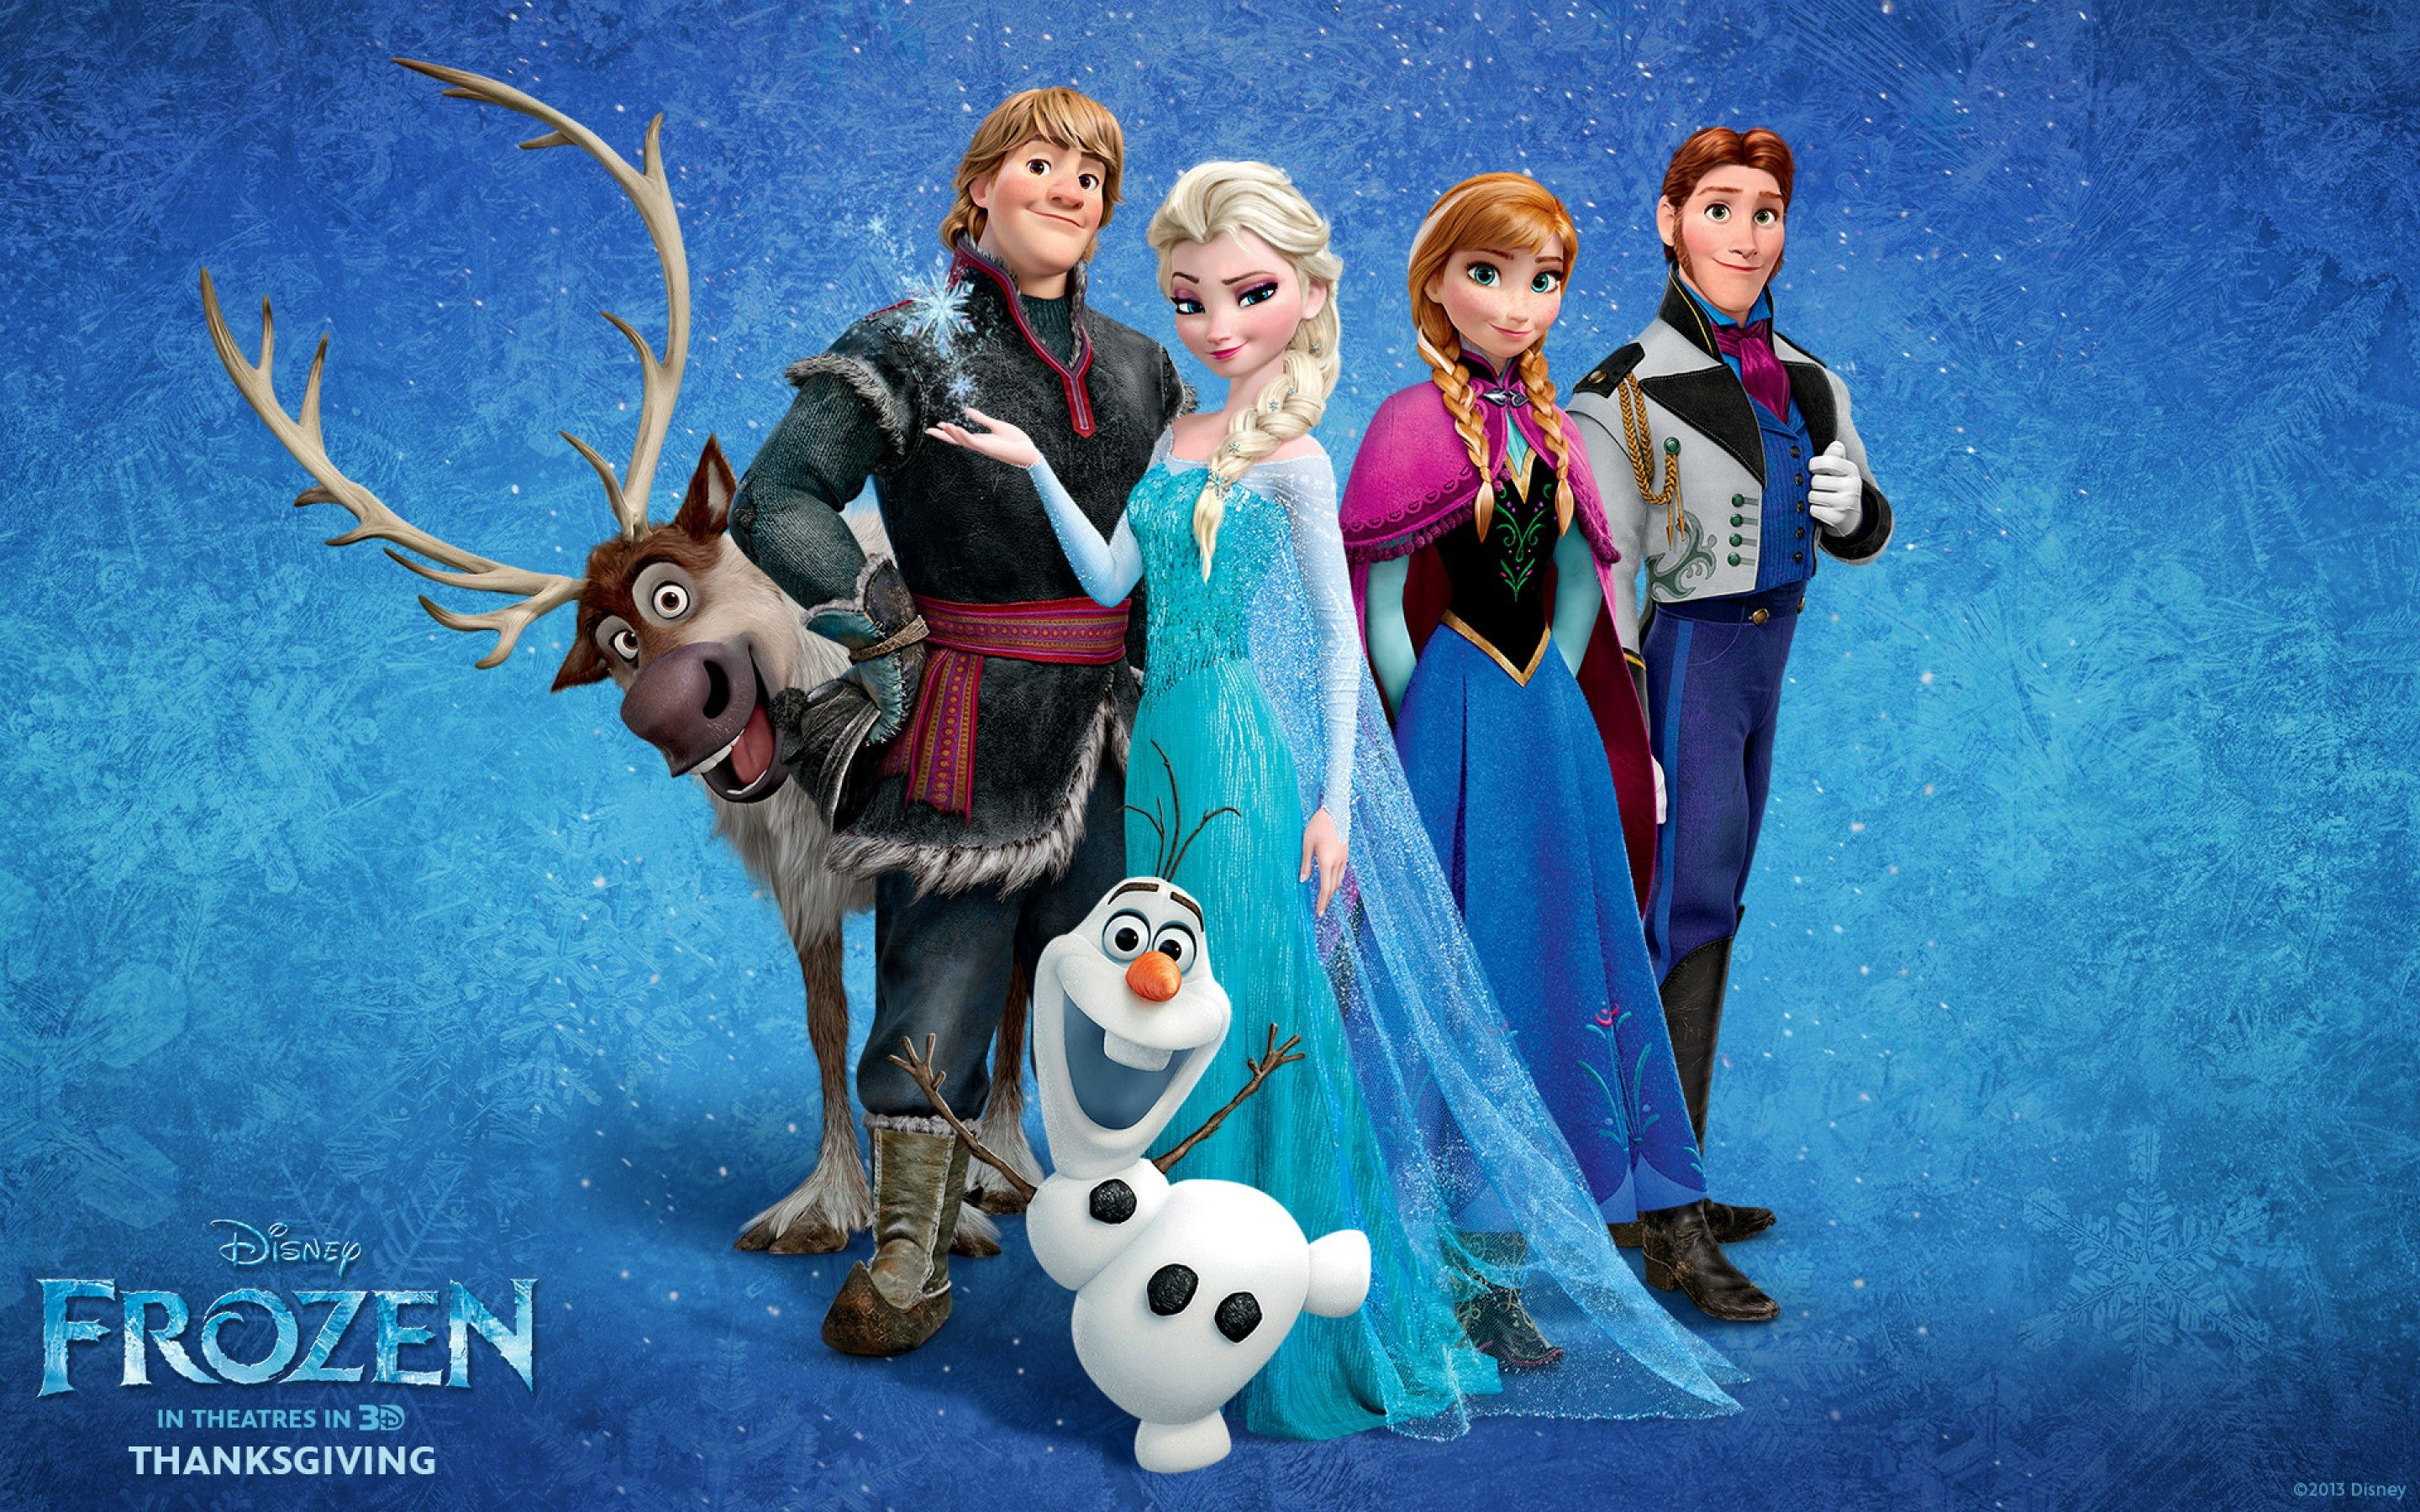 2880x1800 312 Frozen HD Wallpapers | Background Images - Wallpaper Abyss